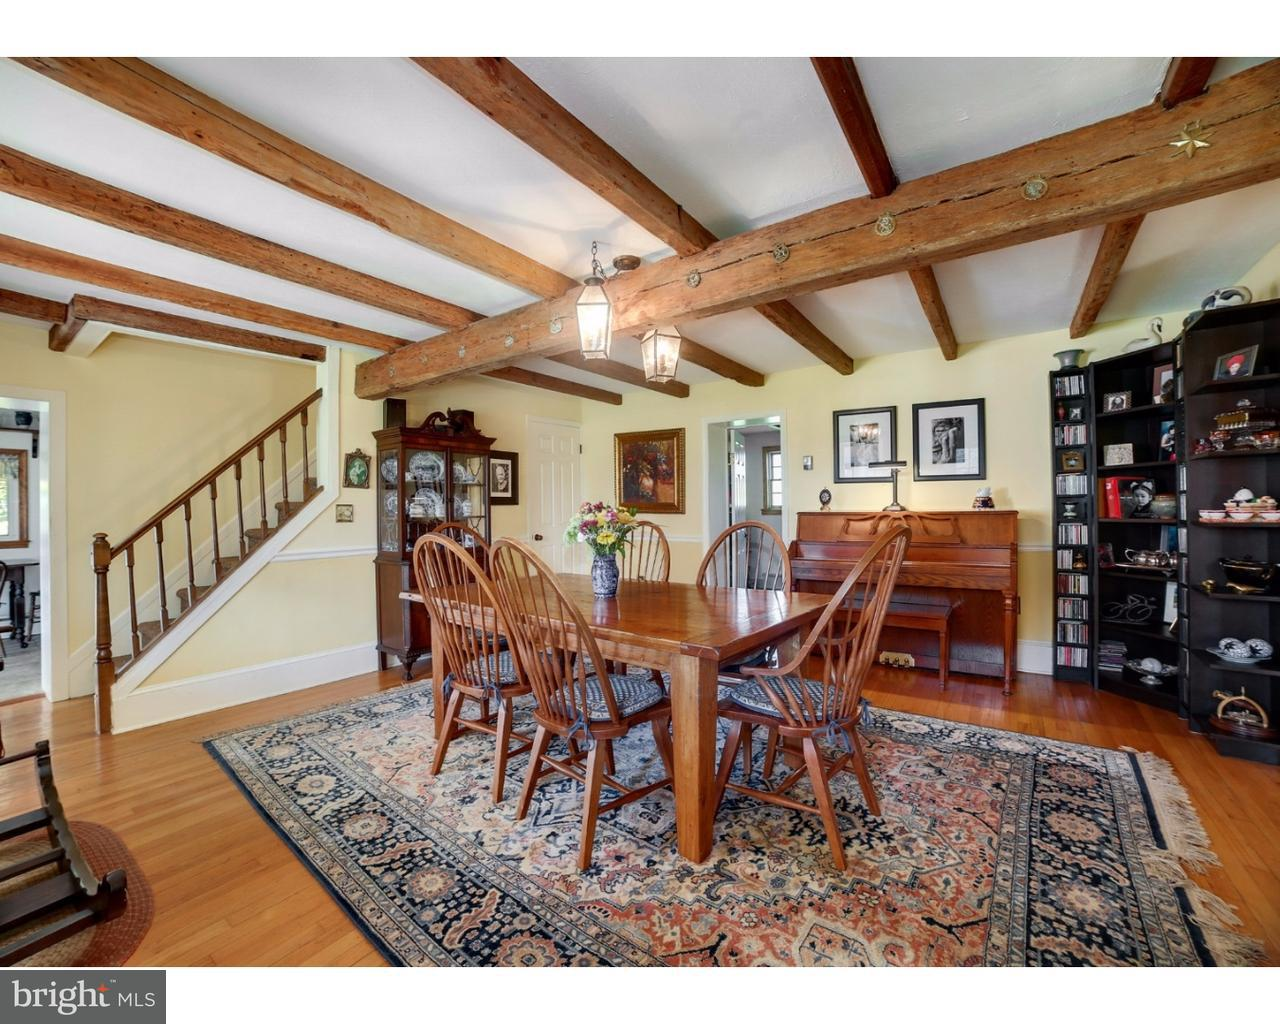 2475 KOONS RD, QUAKERTOWN - Listed at $975,000, QUAKERTOWN